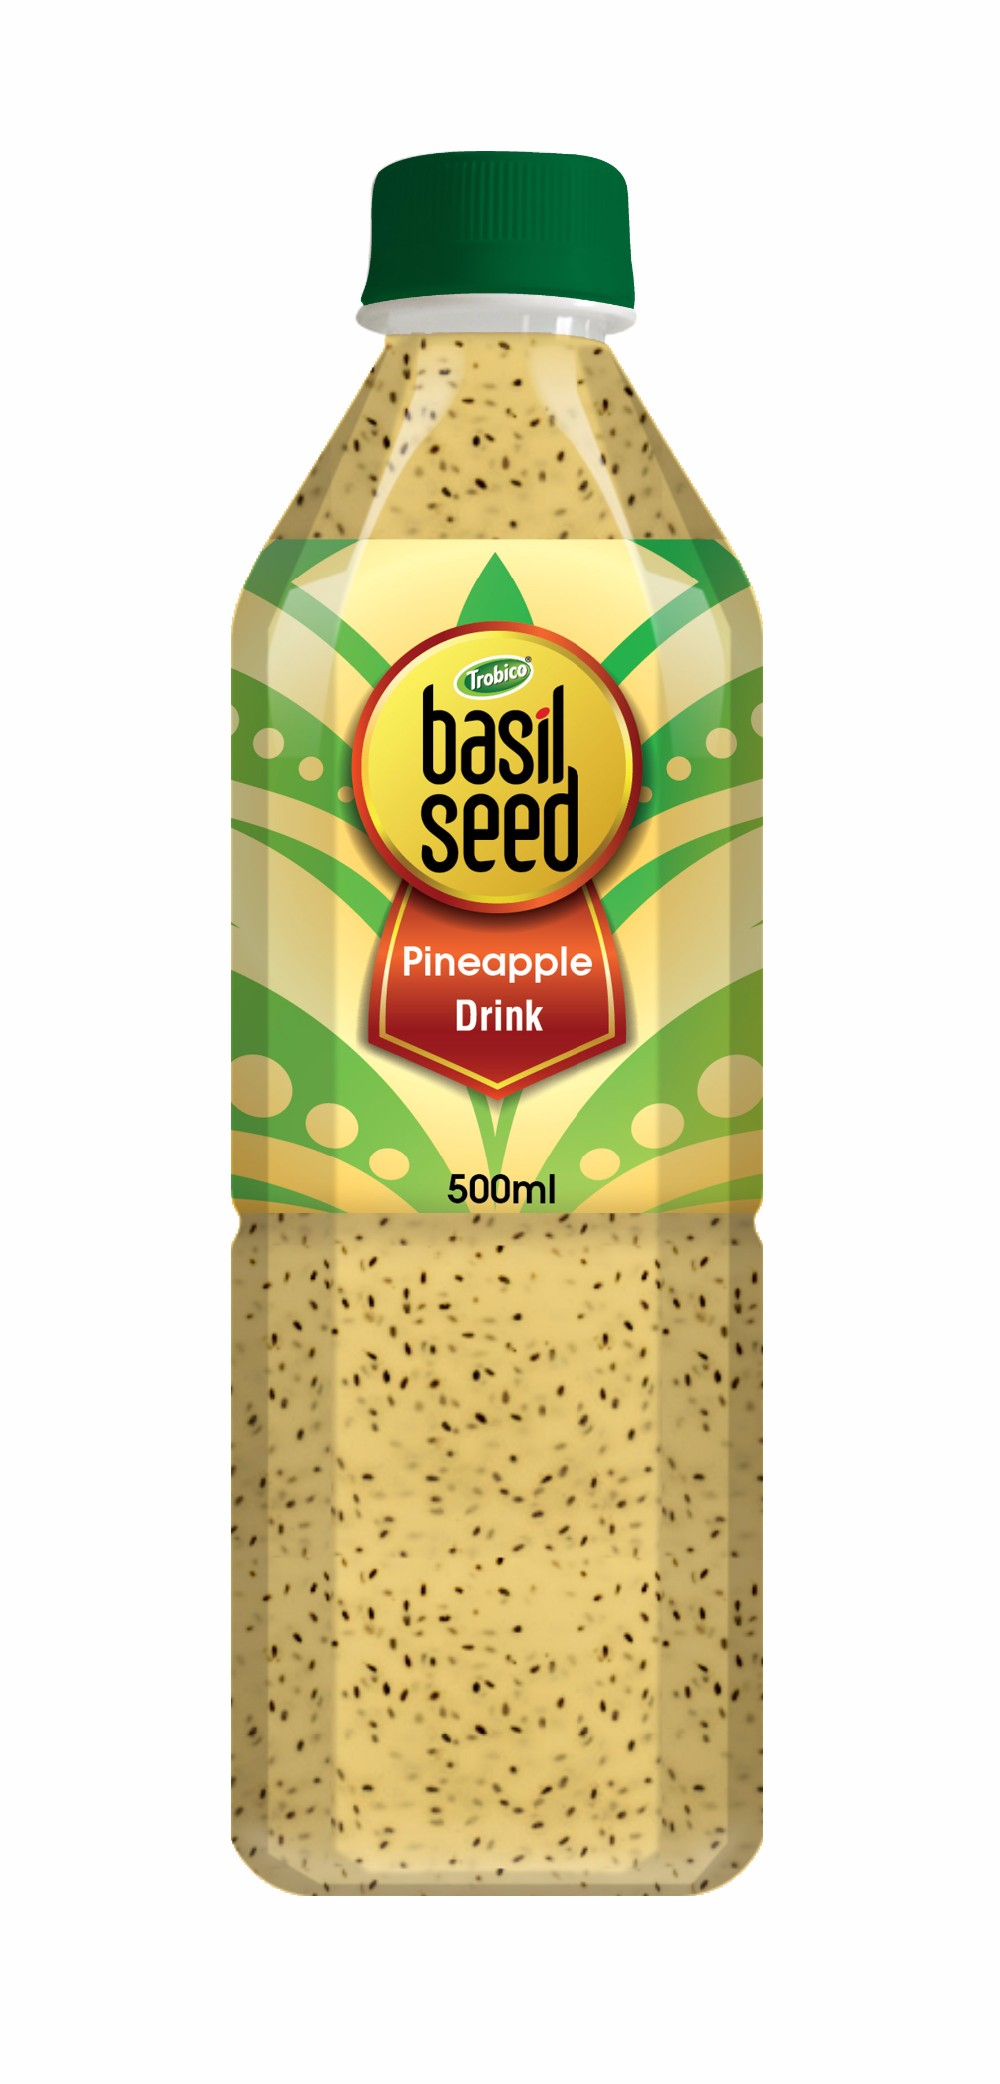 500ml PET Bottle Private Label Basil Seed with Fruit Juice Drink from Vietnam-VietNam Manufacturer-OEM Fruit Juice-From Trobico